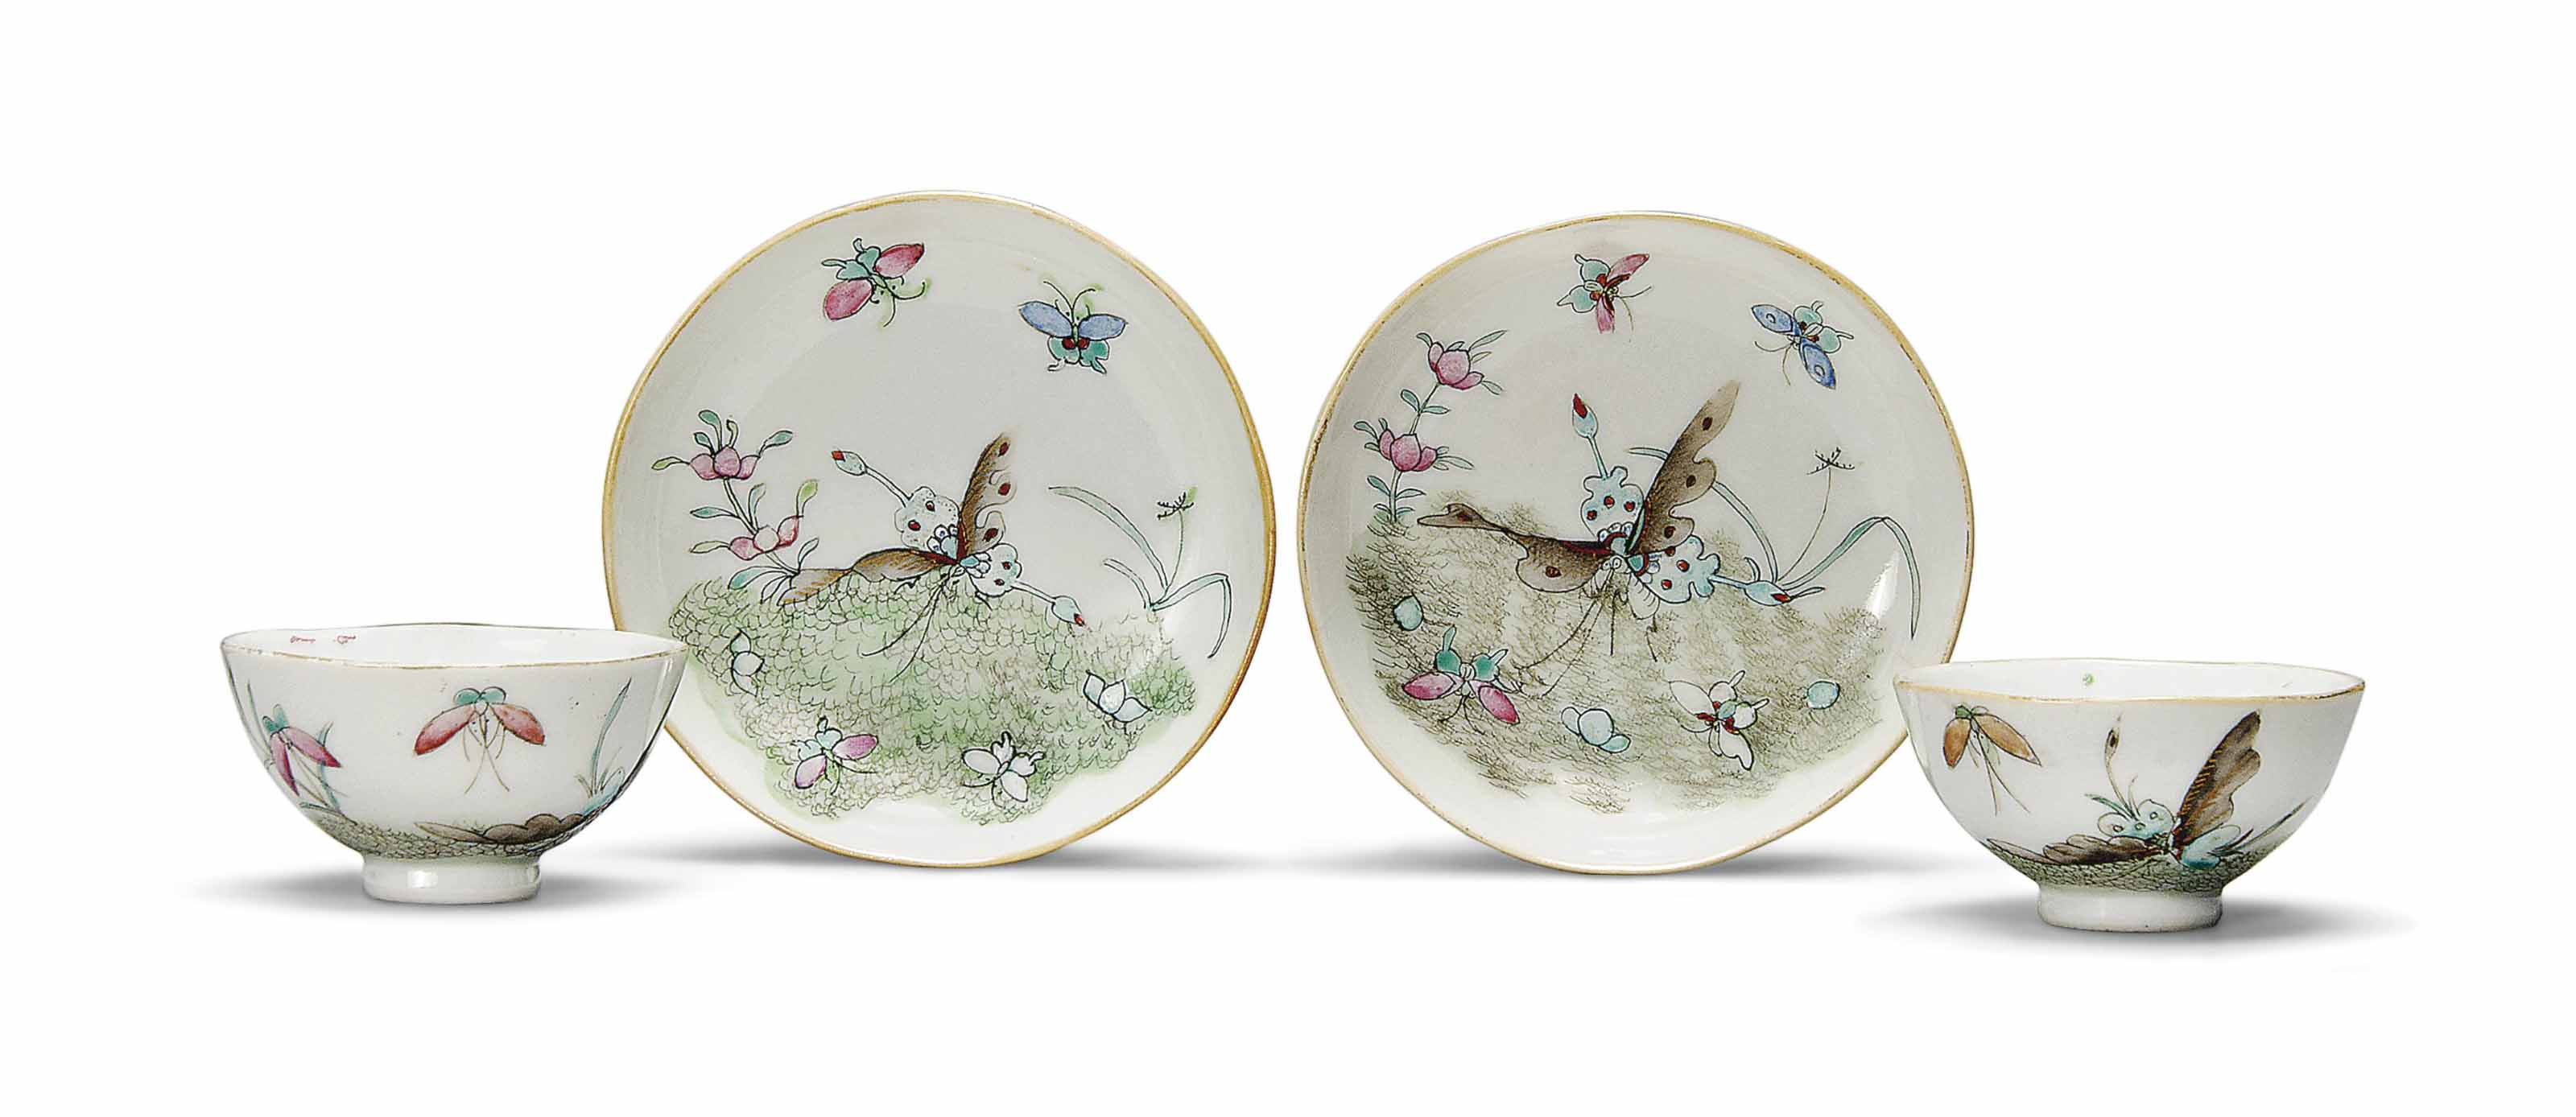 A PAIR OF FAMILLE ROSE TEA BOW